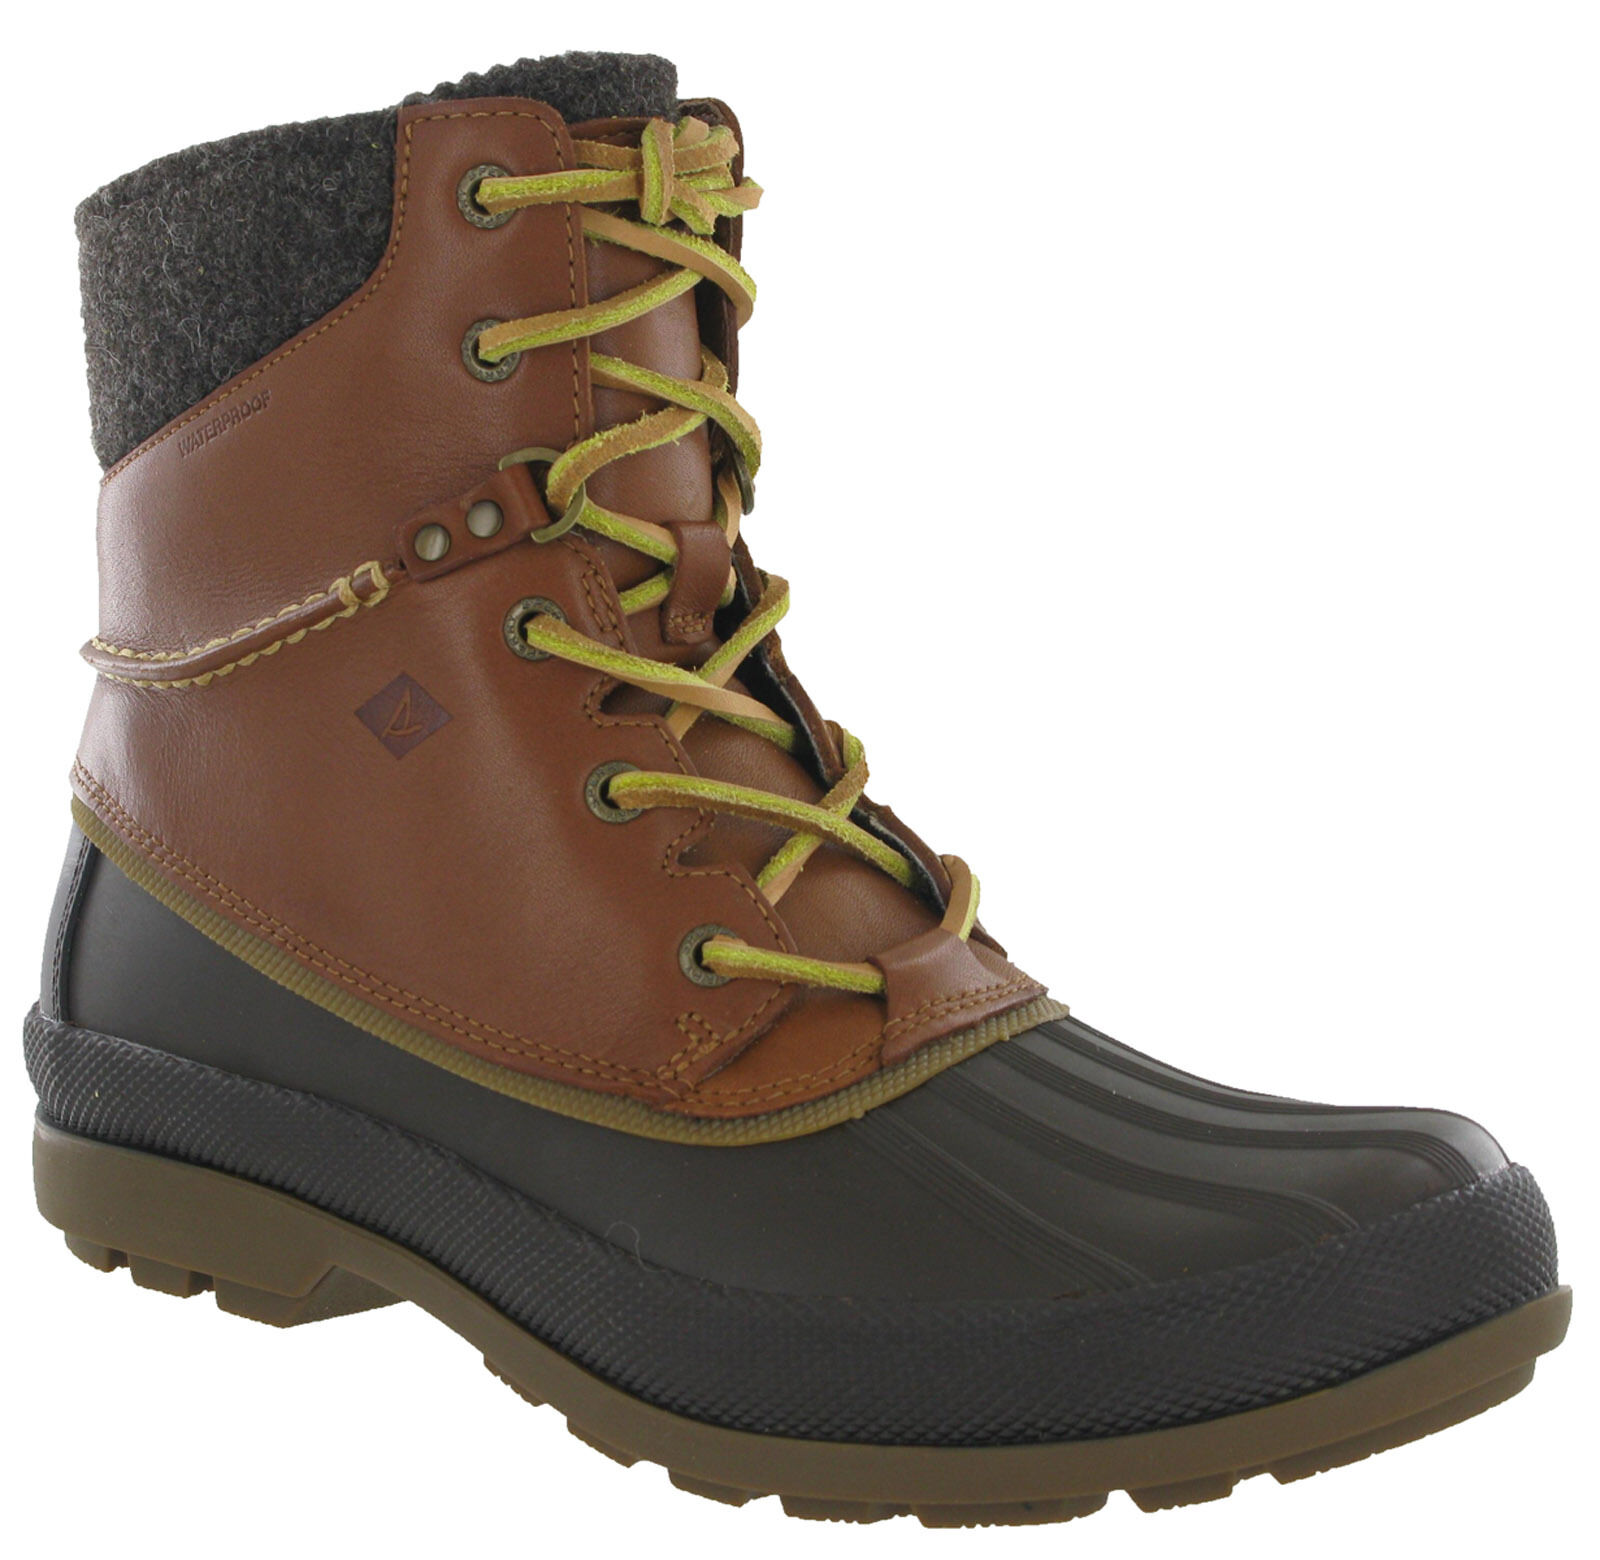 Sperry Cold Bay Ice Winter Duck Leder Stiefel Walking Hiking Waterproof Leder Duck Ankle b2f2b4